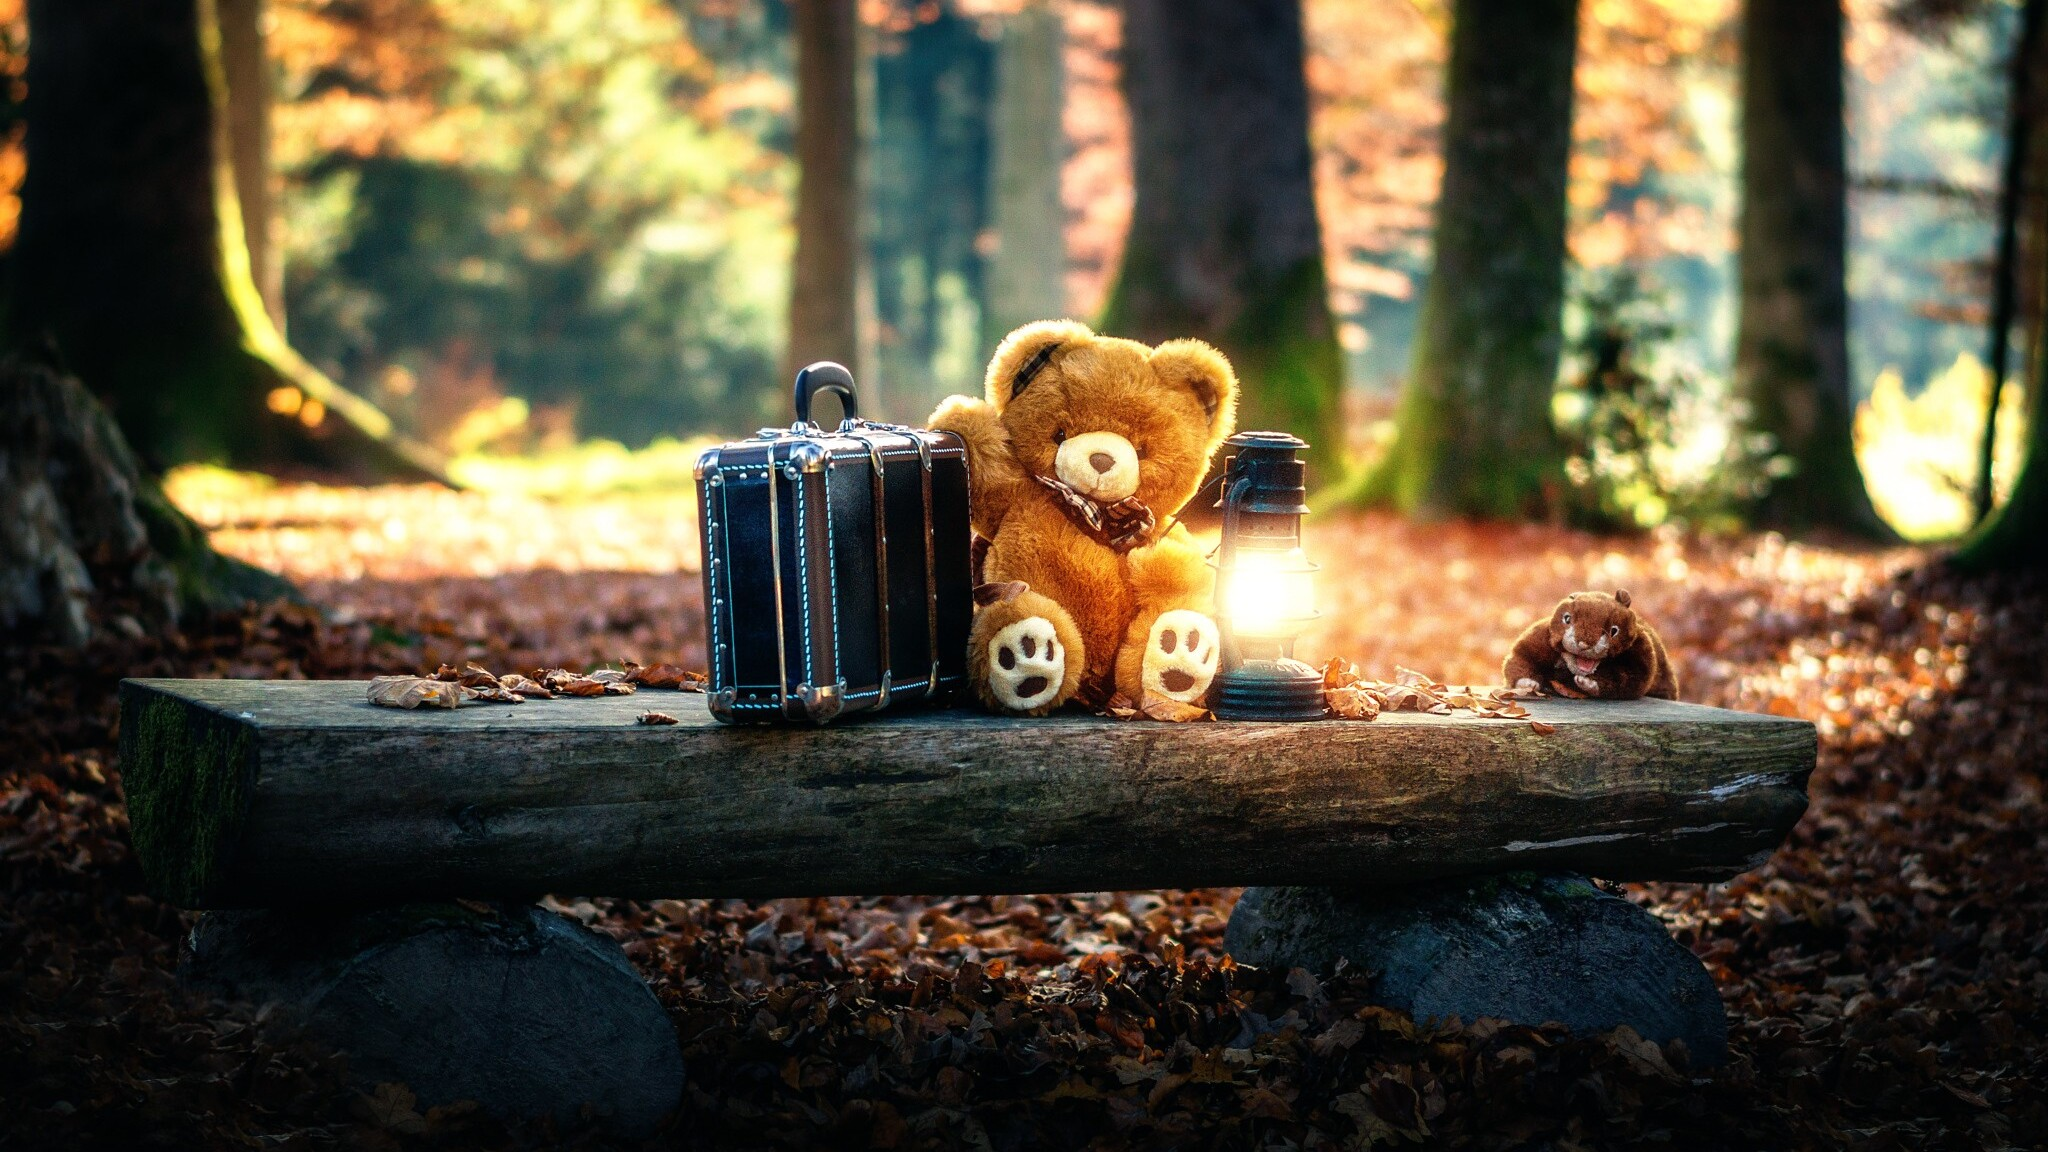 2048x1152 Teddy Bears Cute Alone In Forest 2048x1152